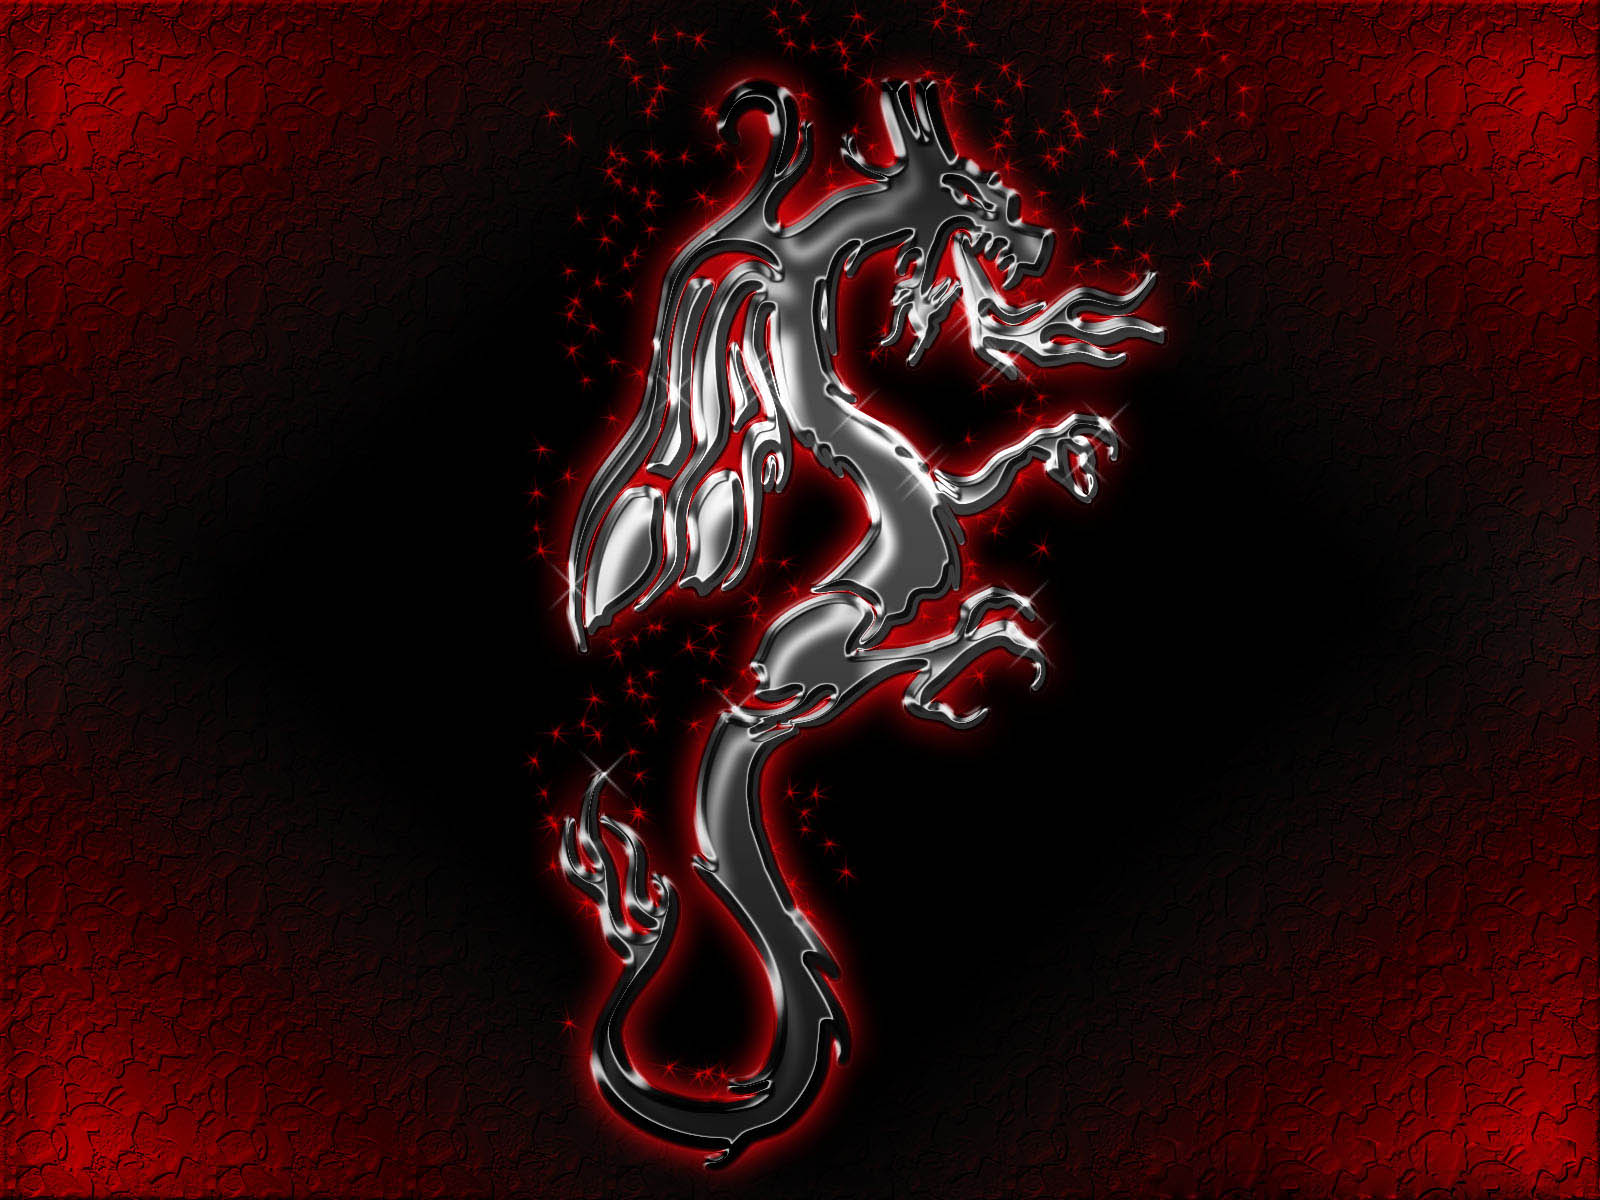 Dragon D HD Desktop Background Wallpapers Amazing Wallpaperz 1600x1200